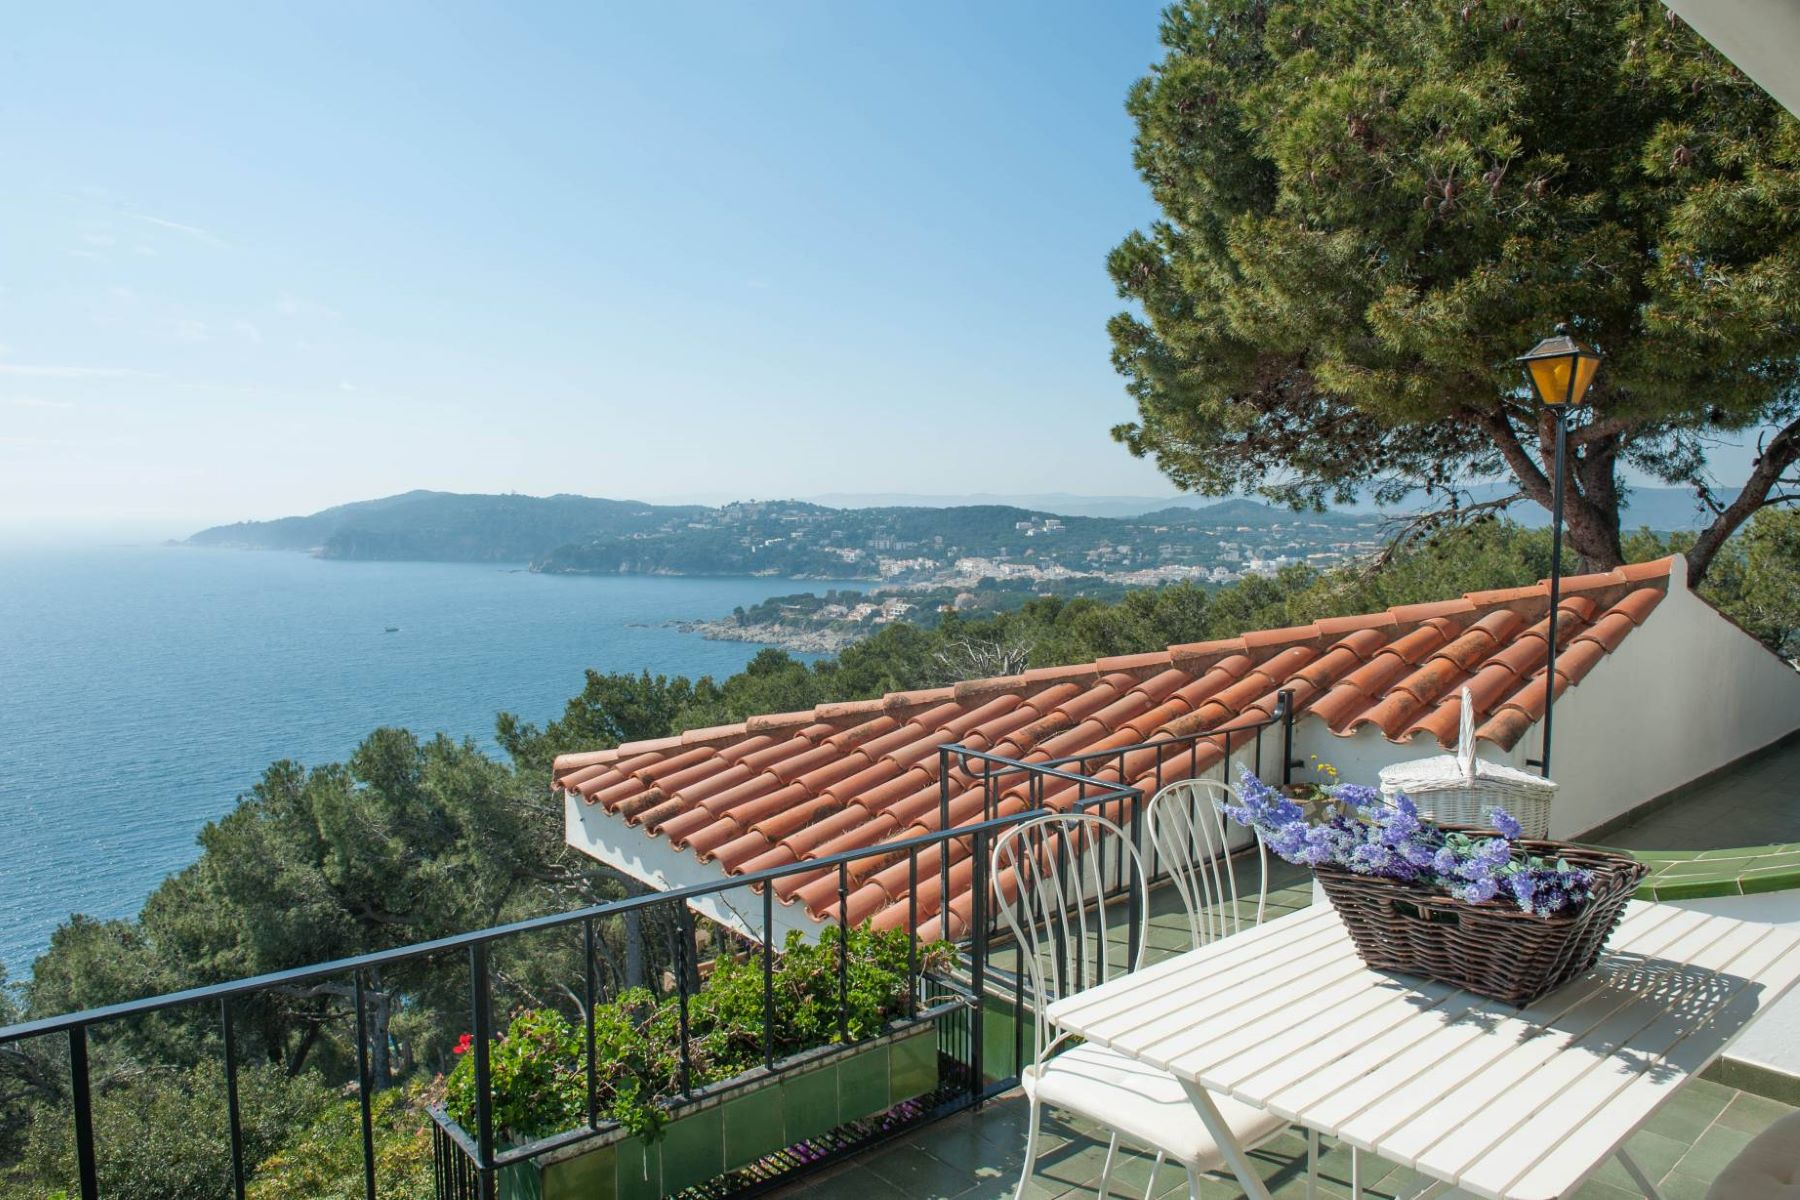 واحد منزل الأسرة للـ Sale في Mediterranean house with sea views and walking distance to the village Llafranc, Costa Brava, 17211 Spain